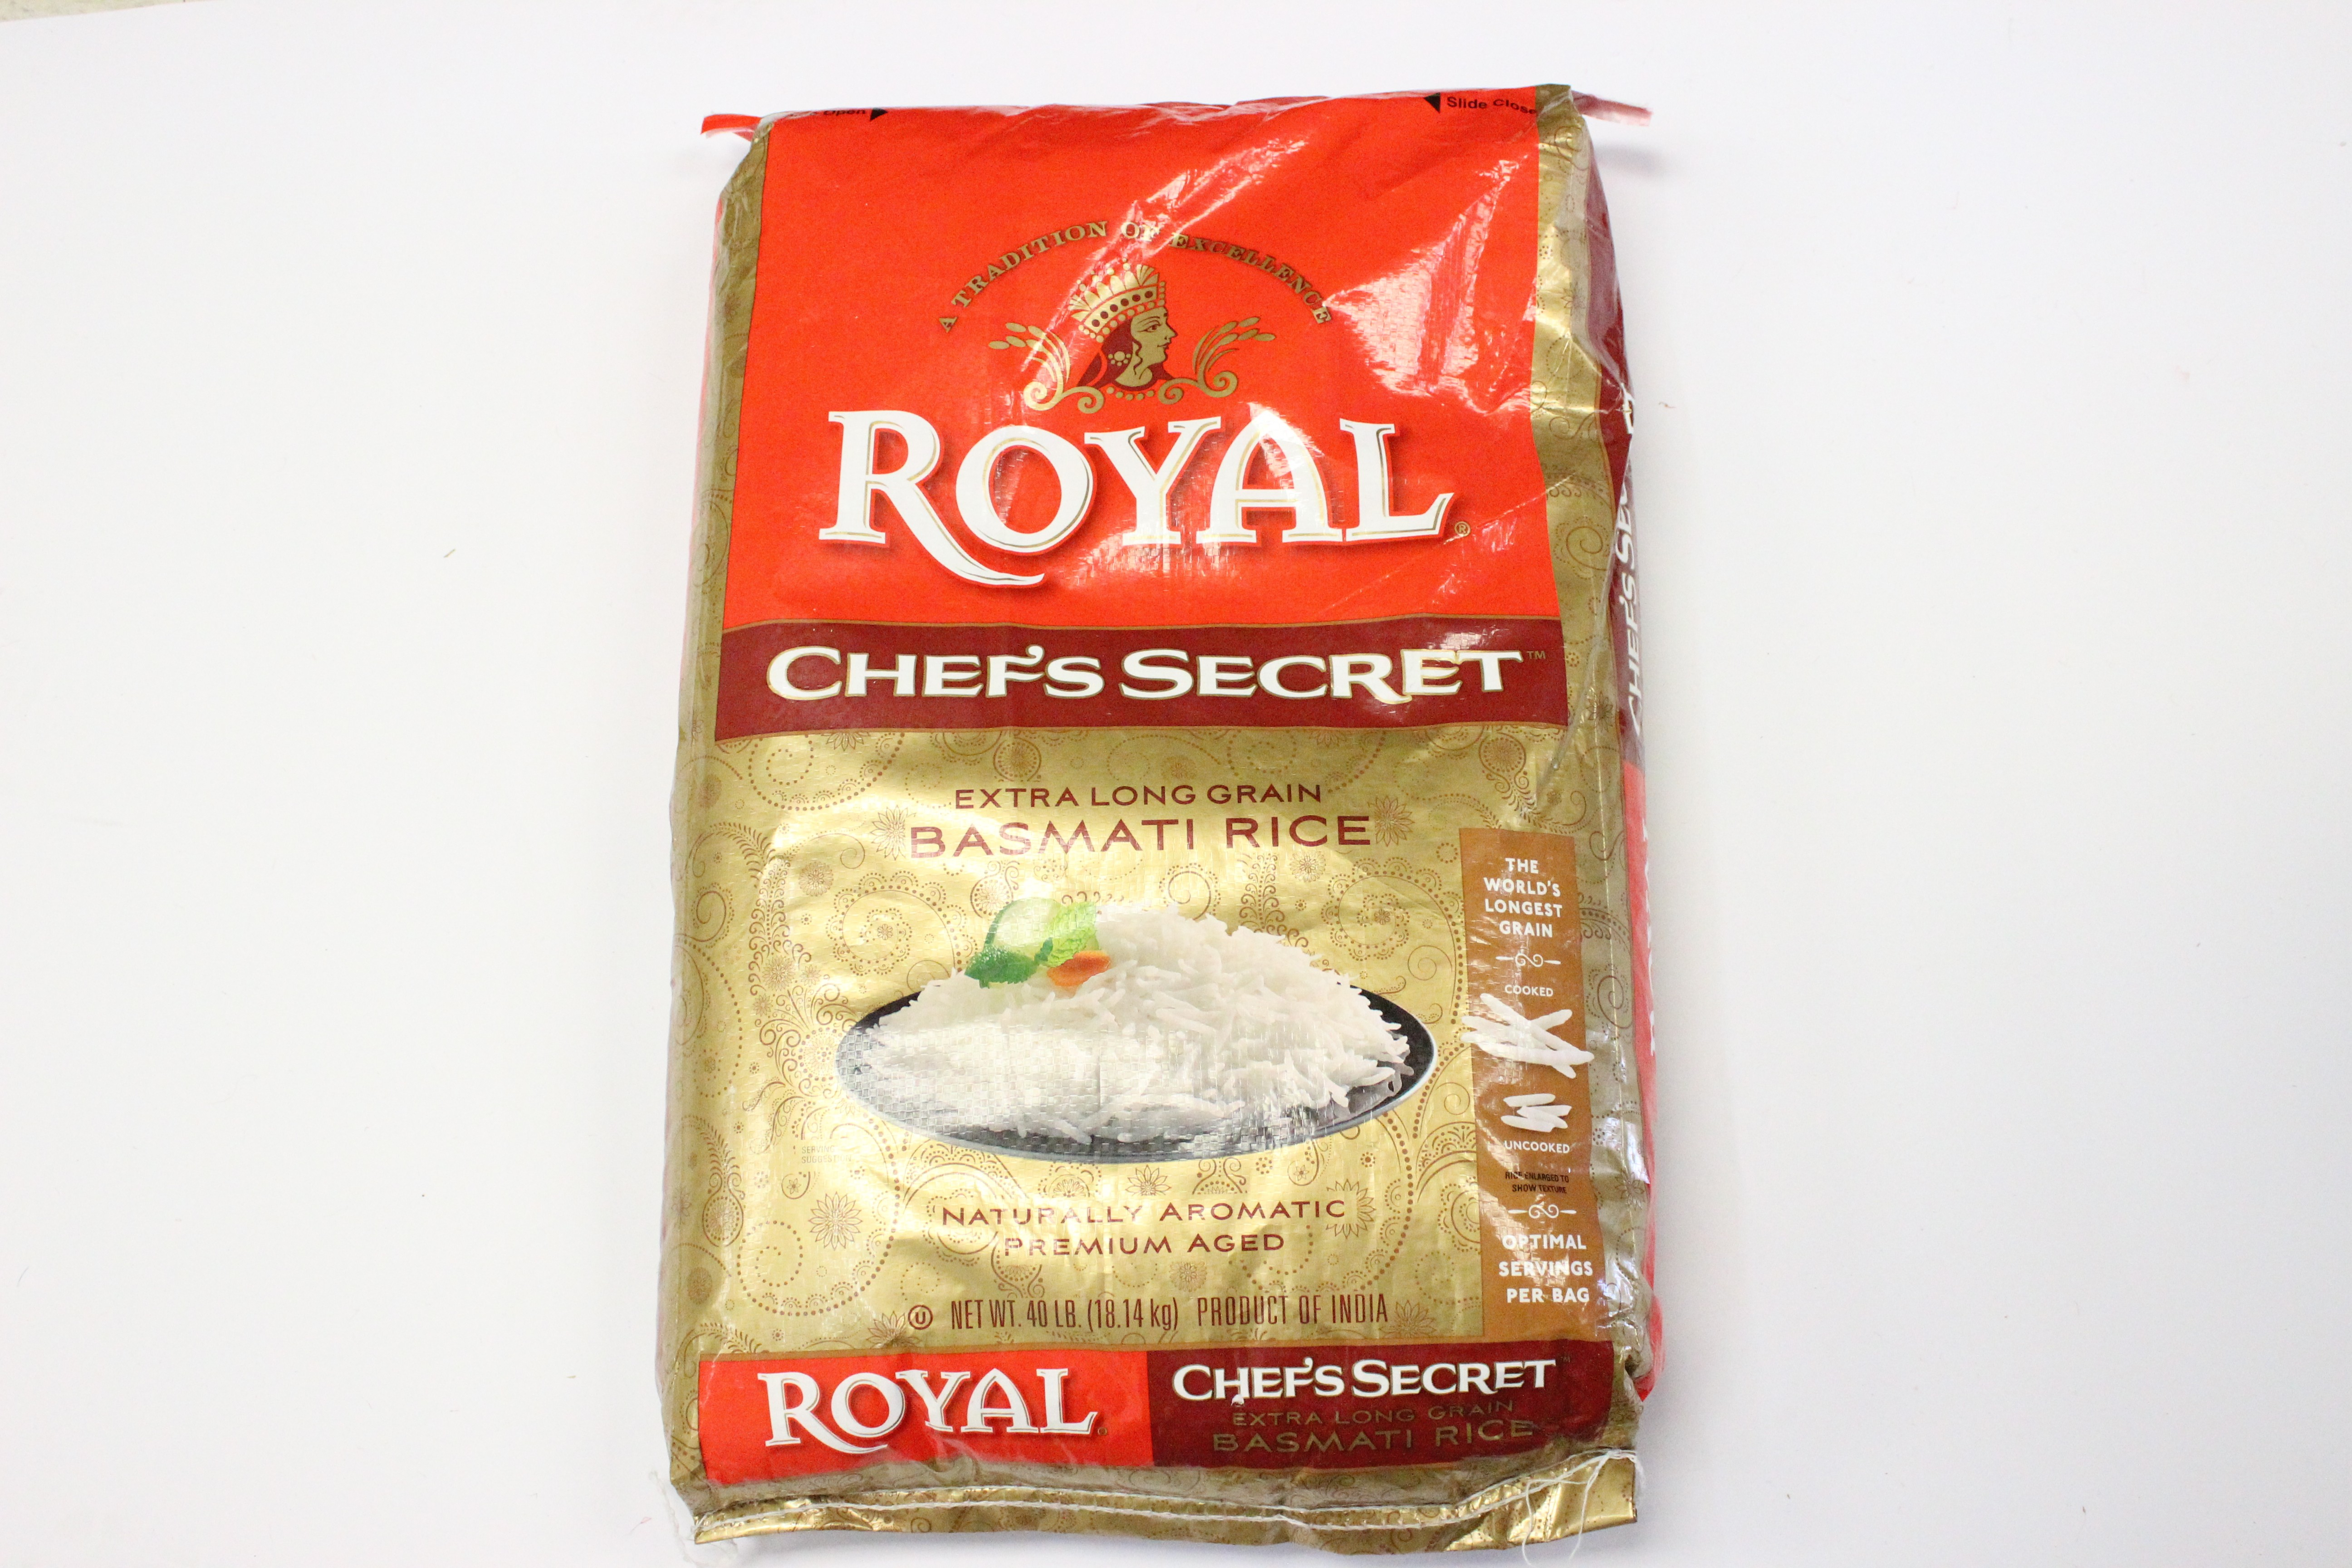 Royal Chef's Secret Basmati Rice 40lb